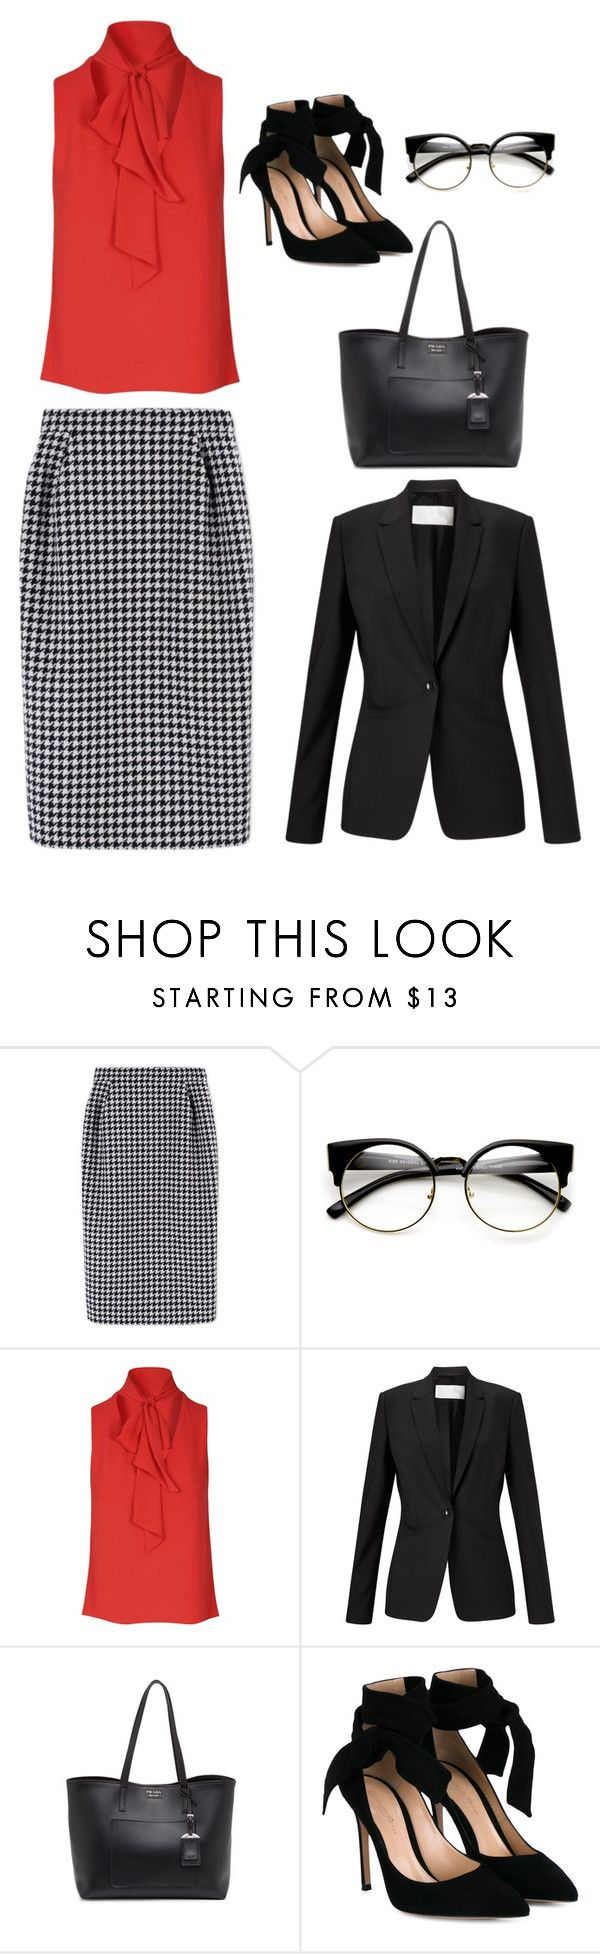 """Look 3- WILSONS"" by kirravanblanken on Polyvore featuring MaxMara, ZeroUV, Glamorous, HUGO, Prada and Gianvito Rossi"